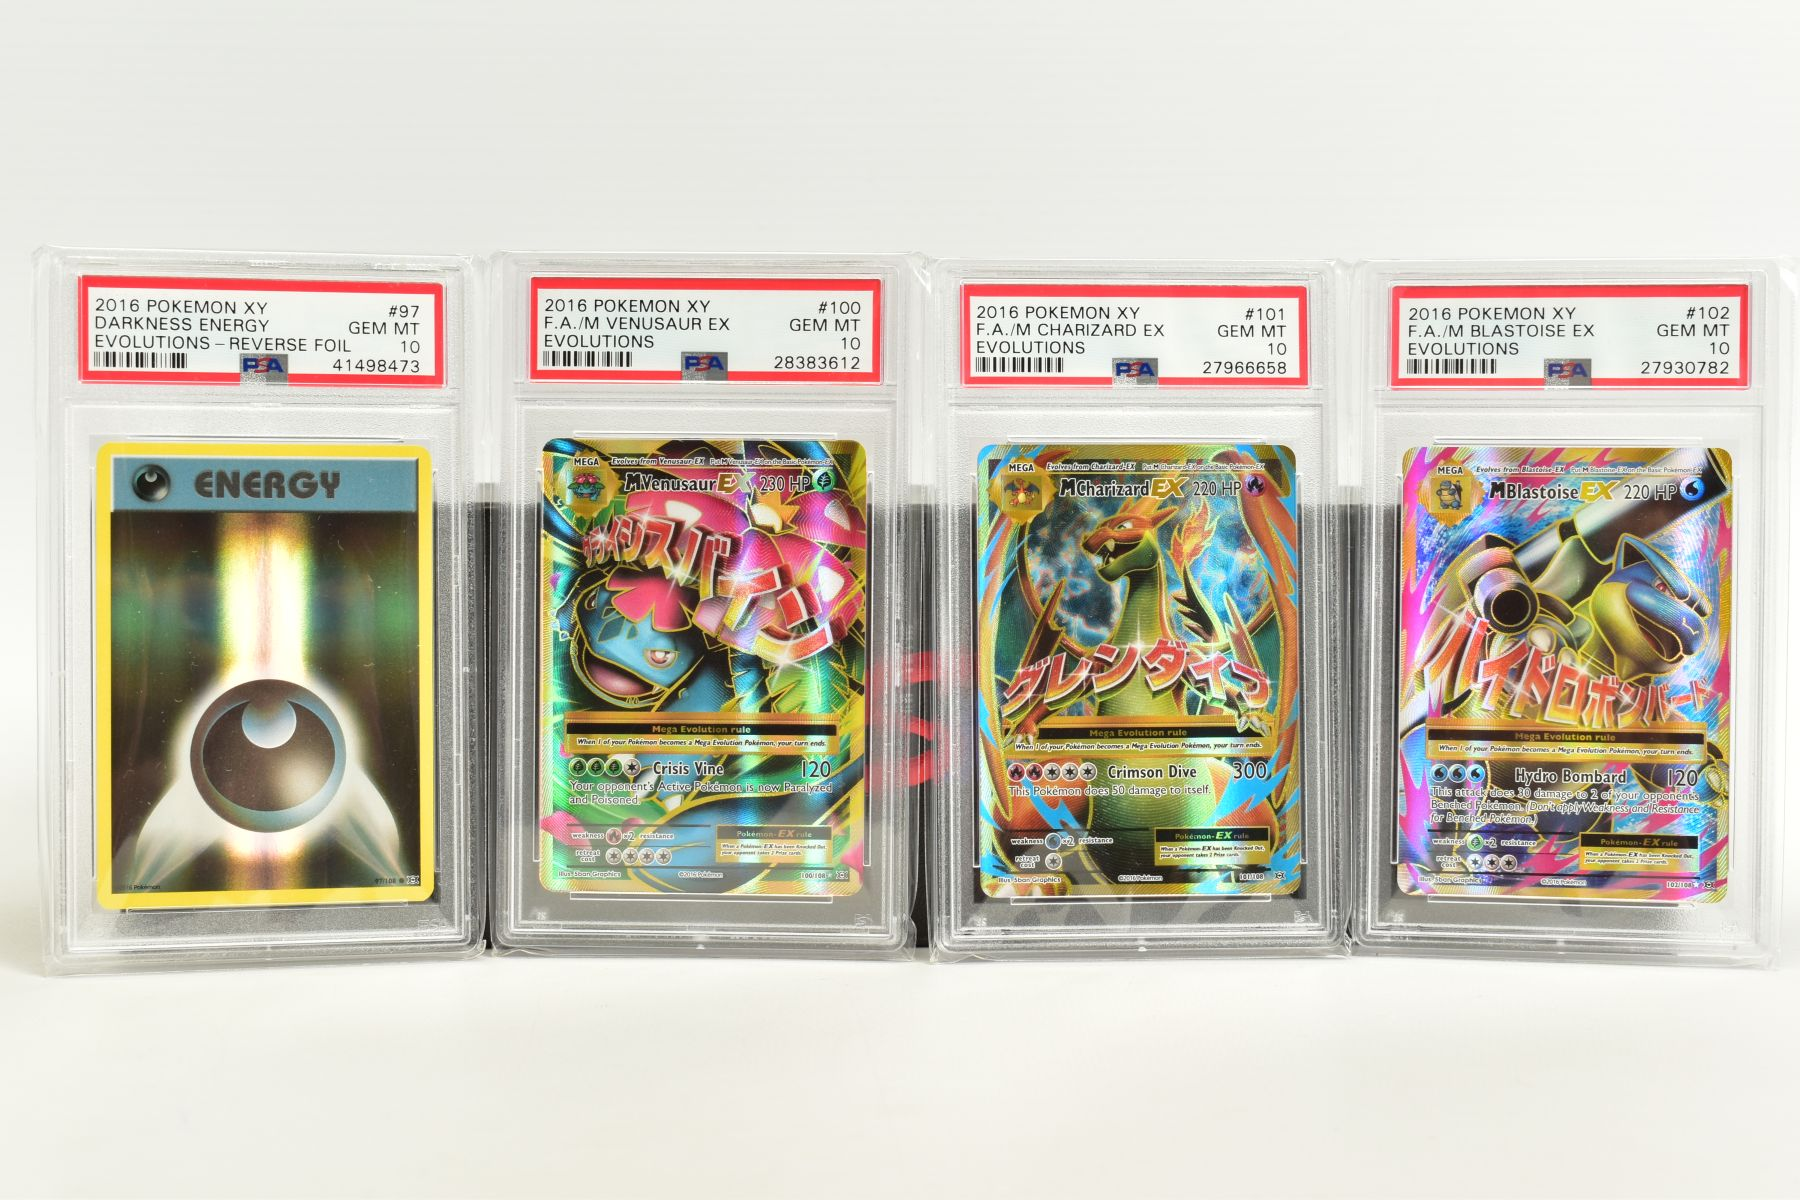 A QUANTITY OF PSA GRADED POKEMON XY EVOLUTIONS SET CARDS, all are graded GEM MINT 10 and are - Image 6 of 10